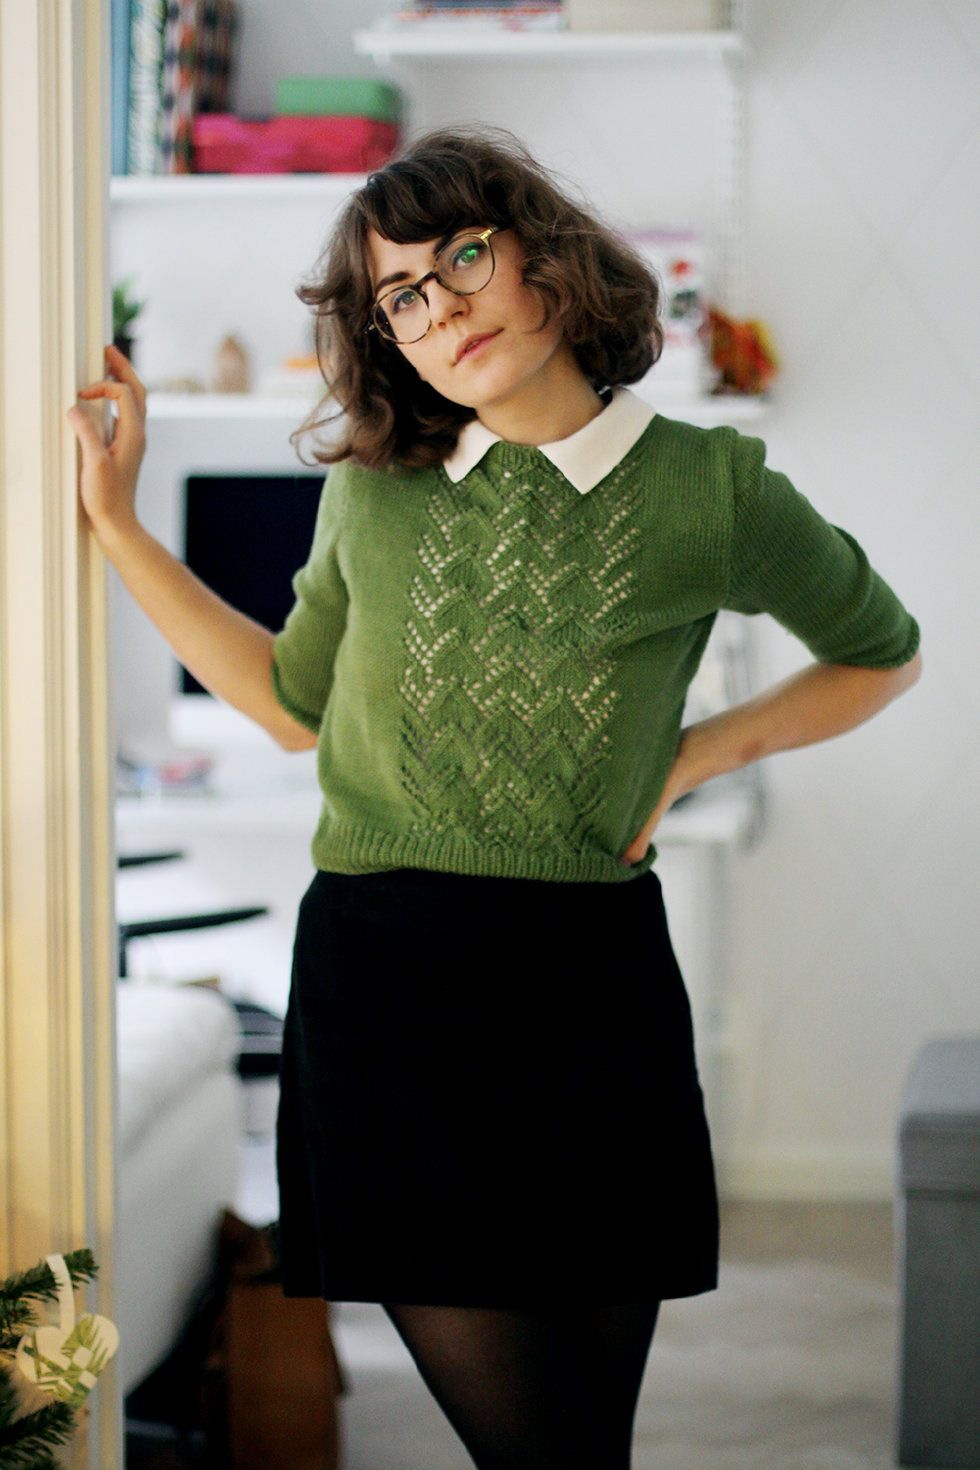 I Like The Colors And The Sweater With The Peter Pan Collar Shirt